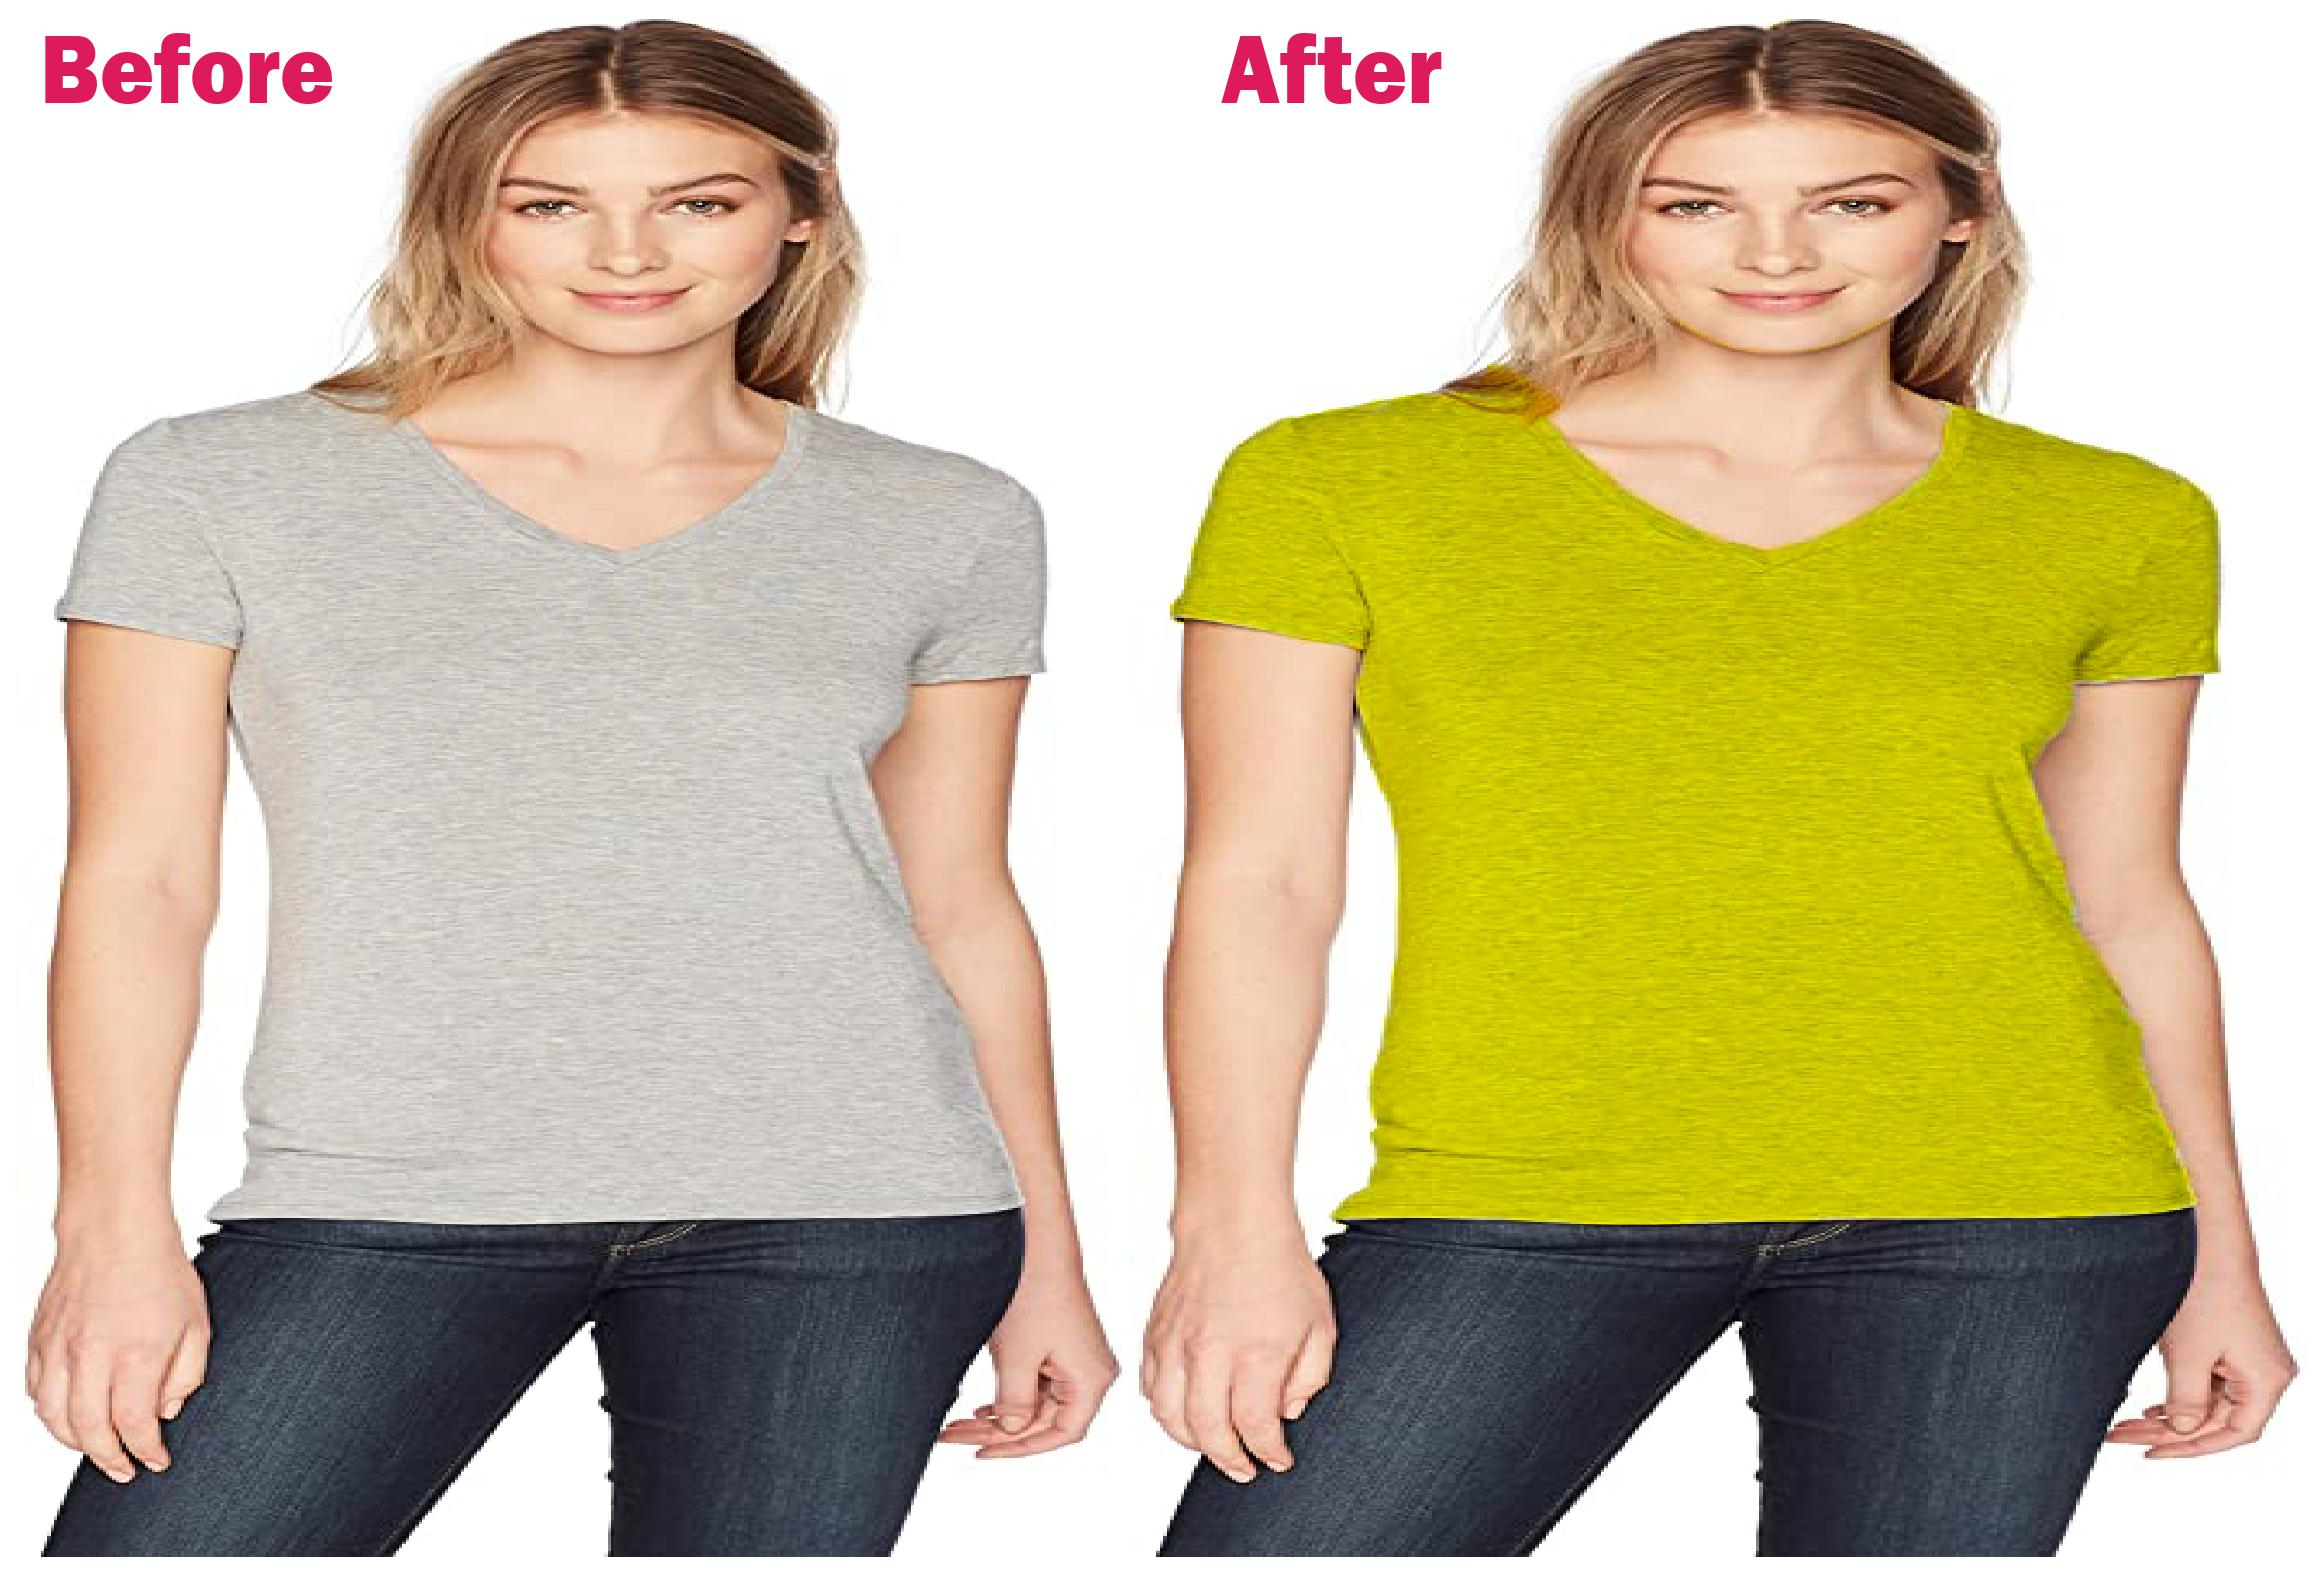 Creating t-shirt design & color removal